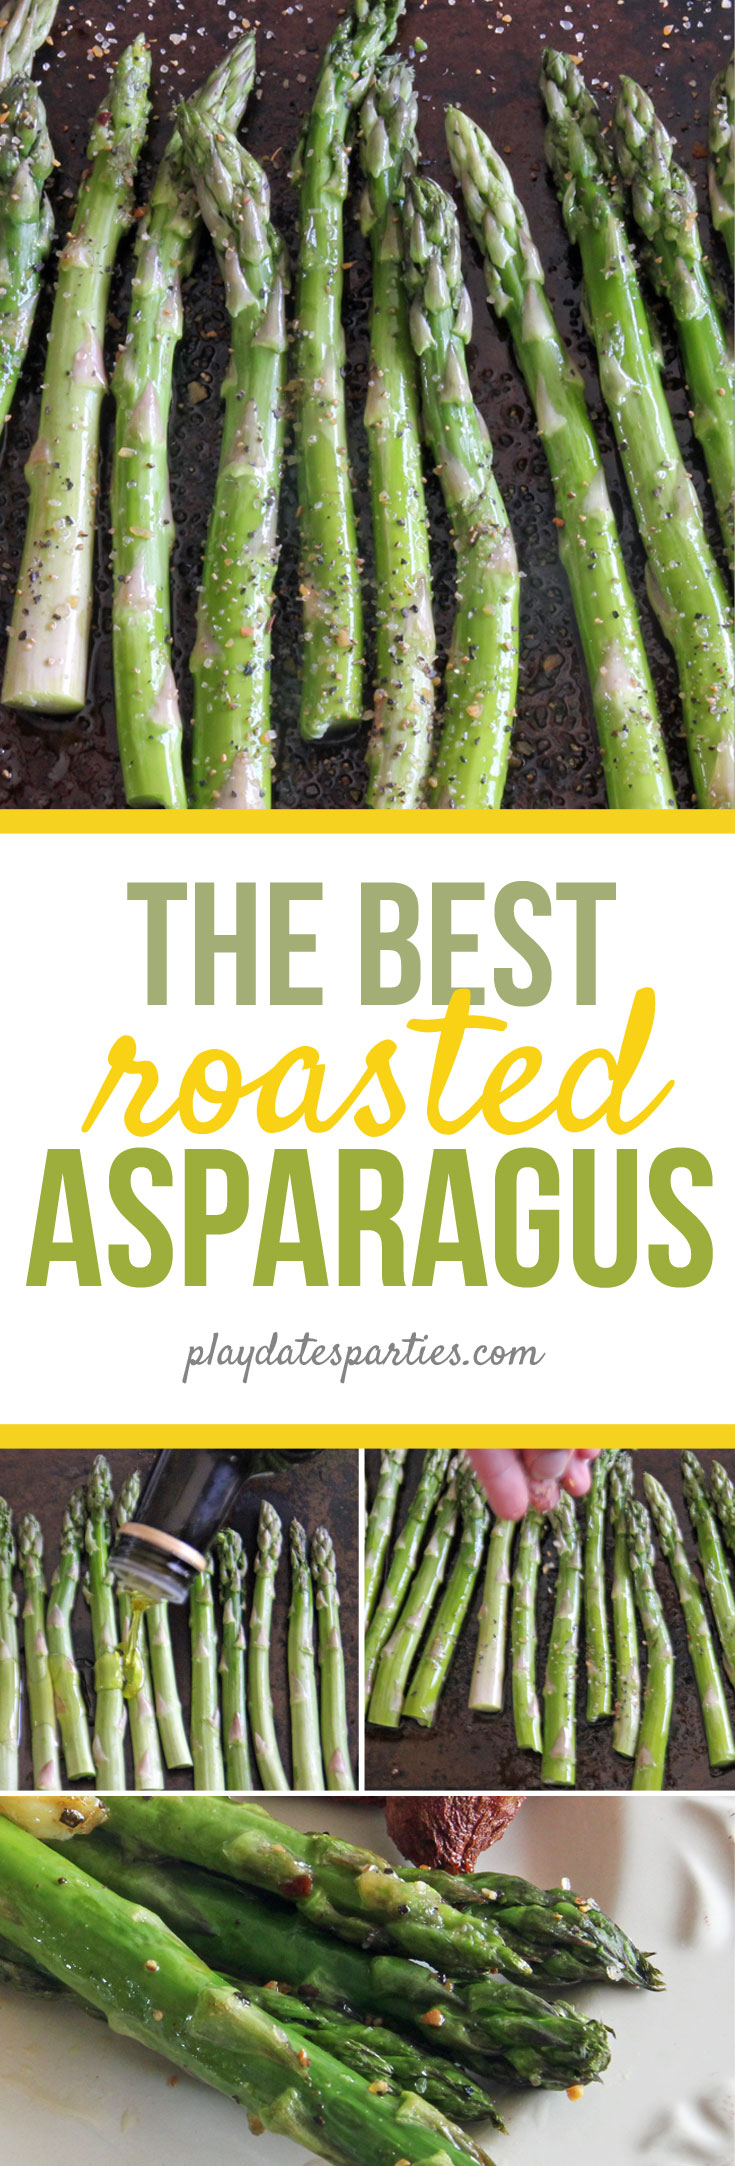 I learned the secret to easy oven roasted asparagus from a caterer. And then put my own spin on it to make it the BEST recipe you can find. Plus, it fits into some of the most popular diets, like vegan, vegetarian, and paleo. #vegetarian #asparagus #dinnerrecipes #lemon #easyrecipes #sidedishes #veganrecipes